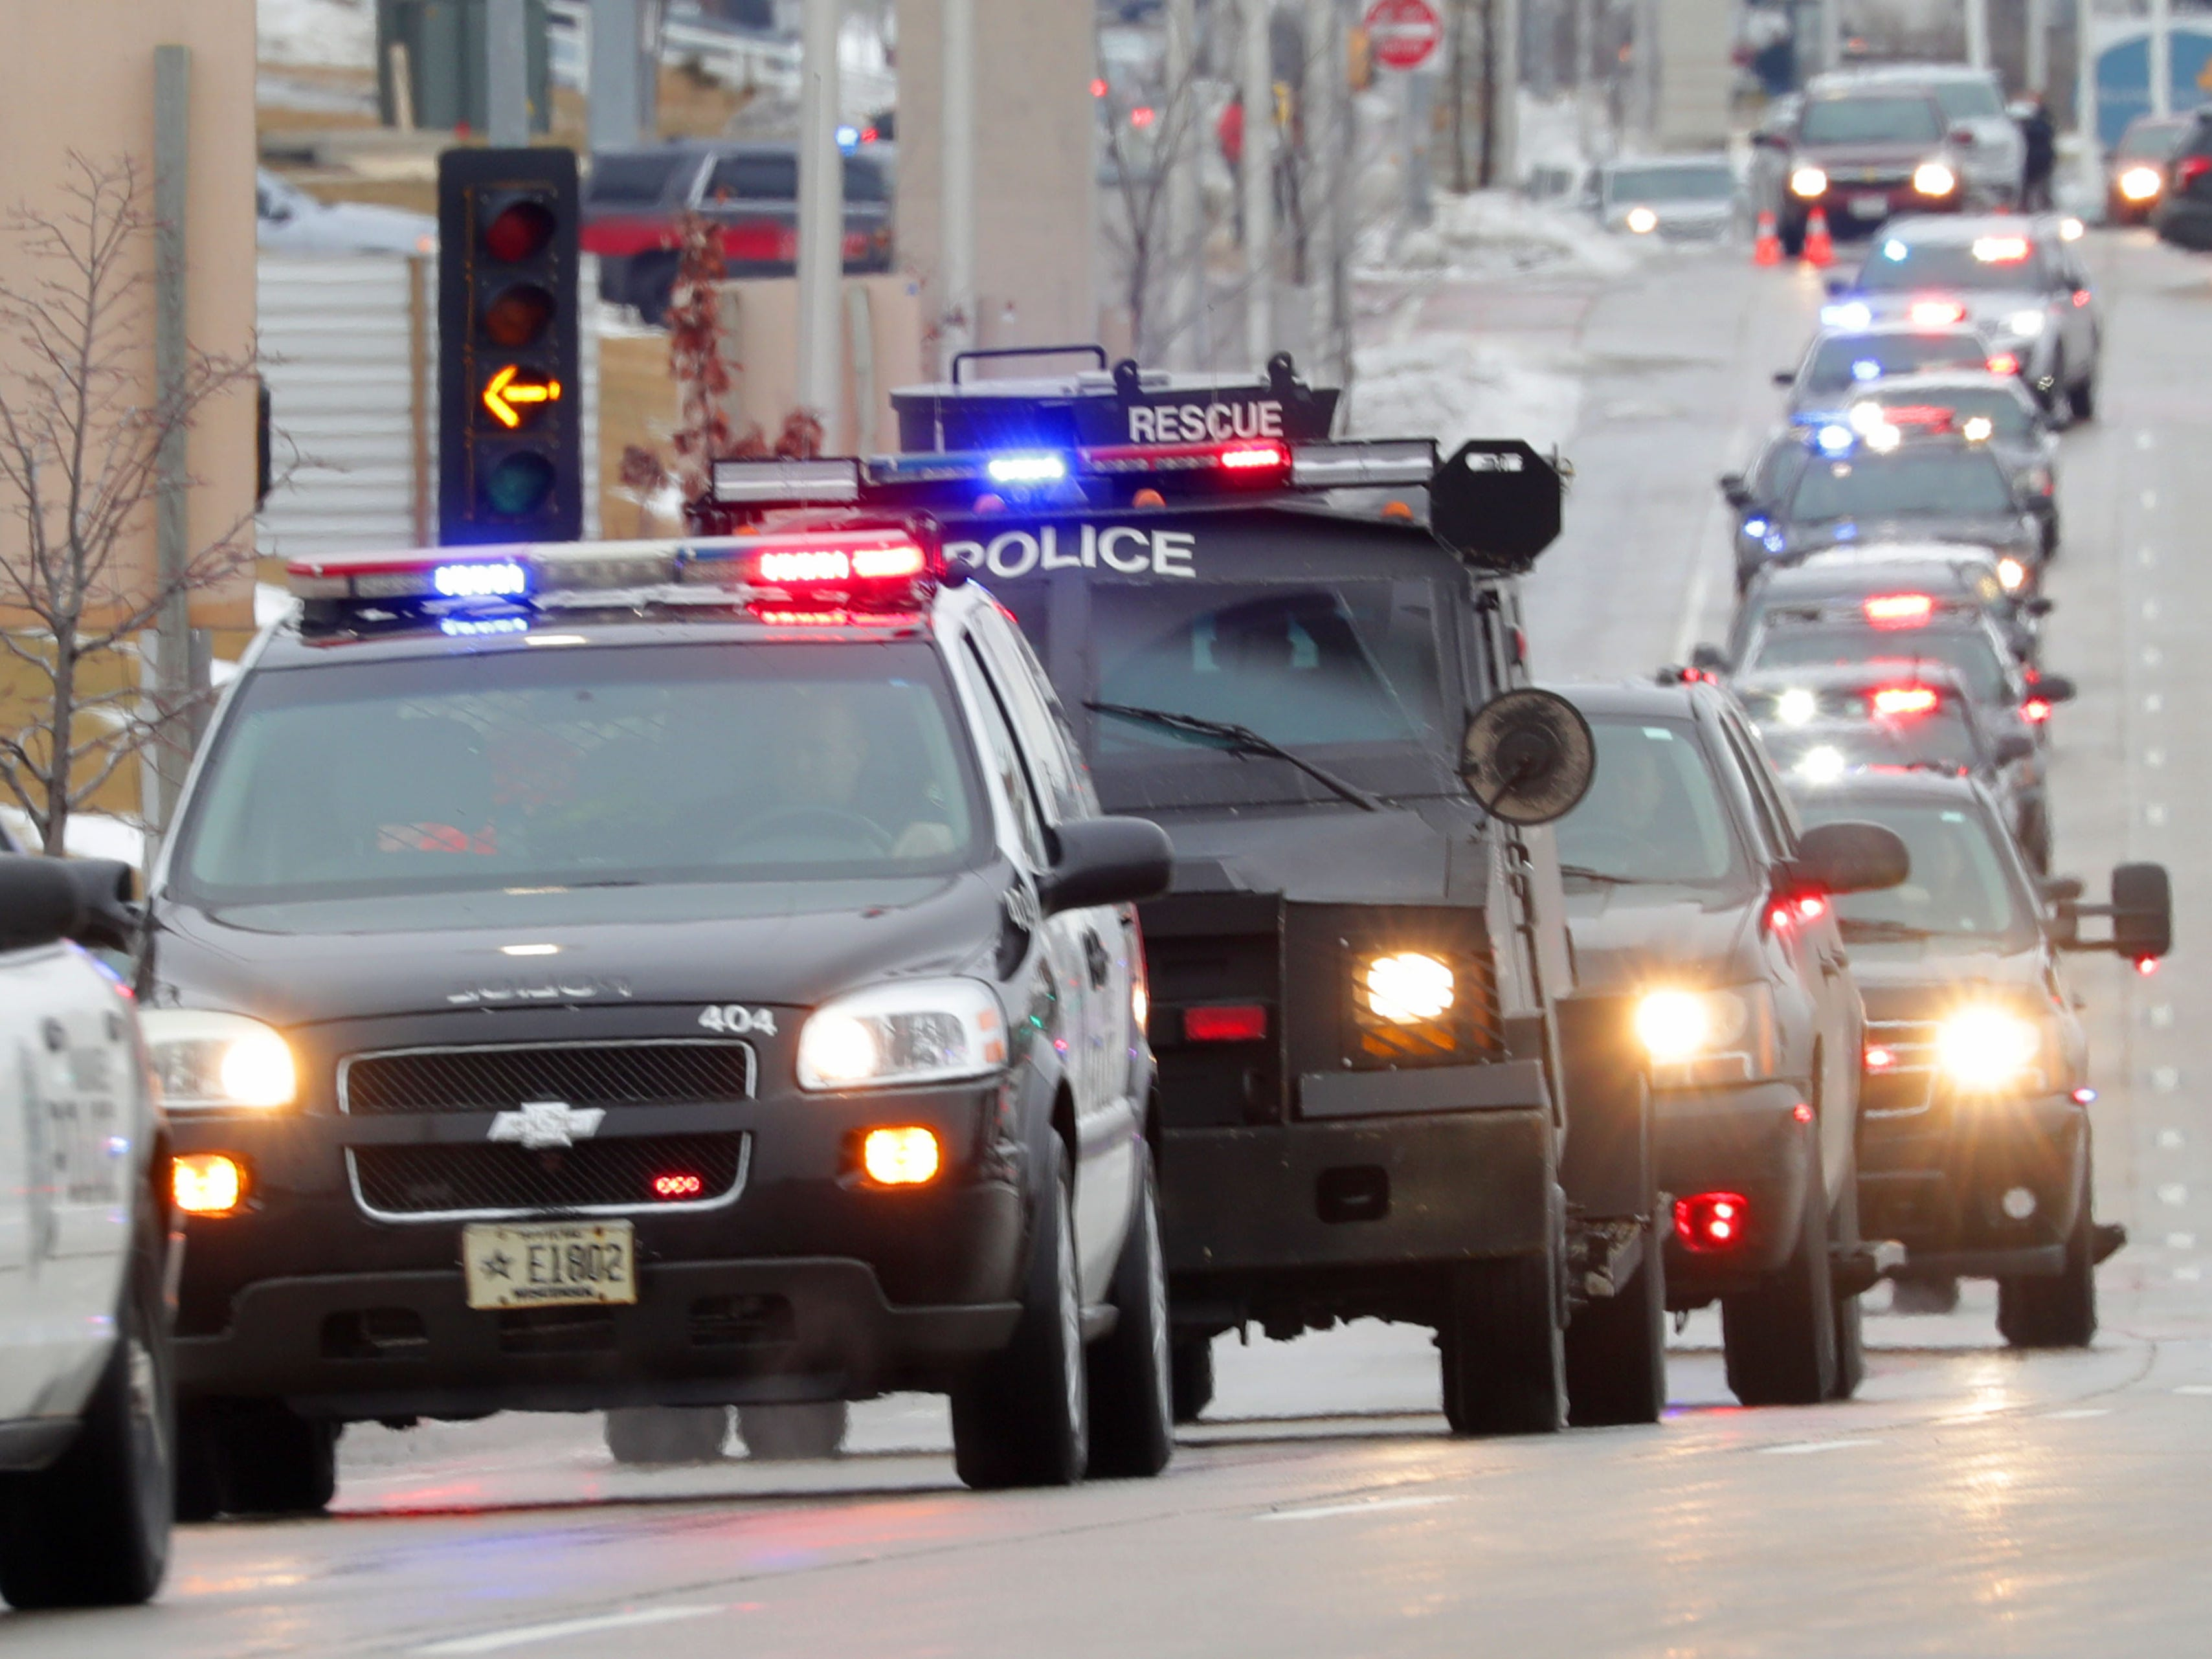 A procession of police vehicles including an armored vehicle leaves Froedtert Hospital in Wauwatosa on Wednesday on its way to the Milwaukee County Medical Examiner's Office with the hearse containing the body of a fallen Milwaukee police officer.